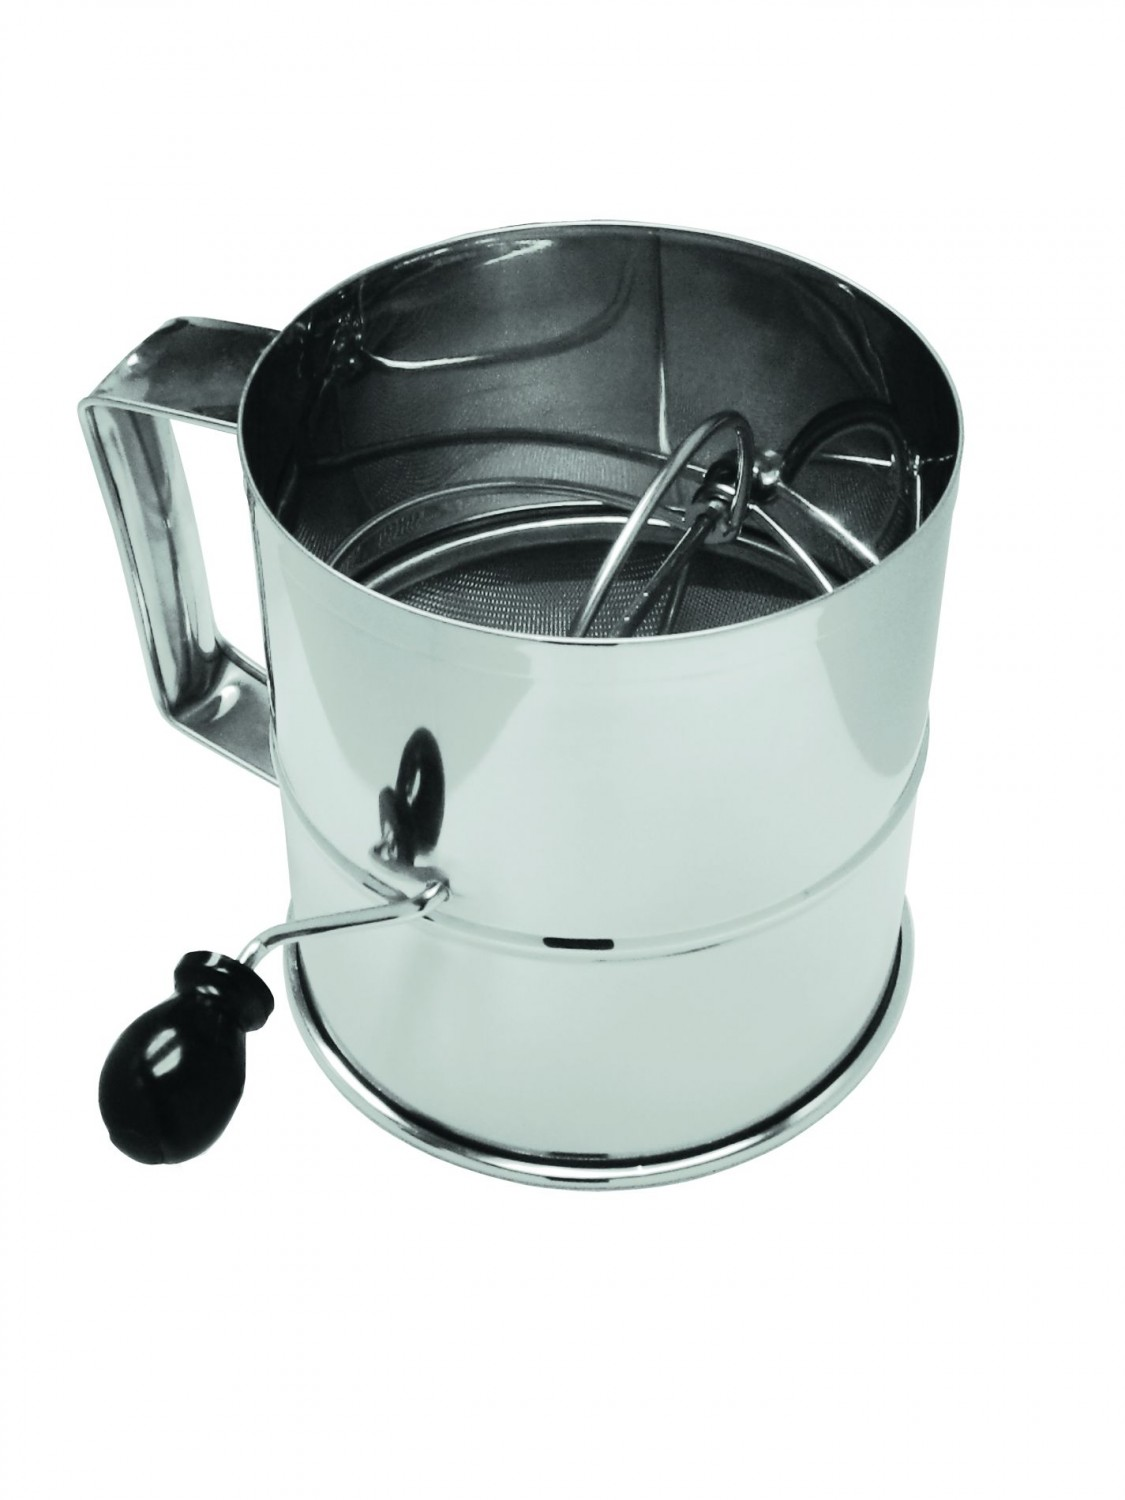 Update International RFS-3LB 8 Cup Rotary Flour Sifter